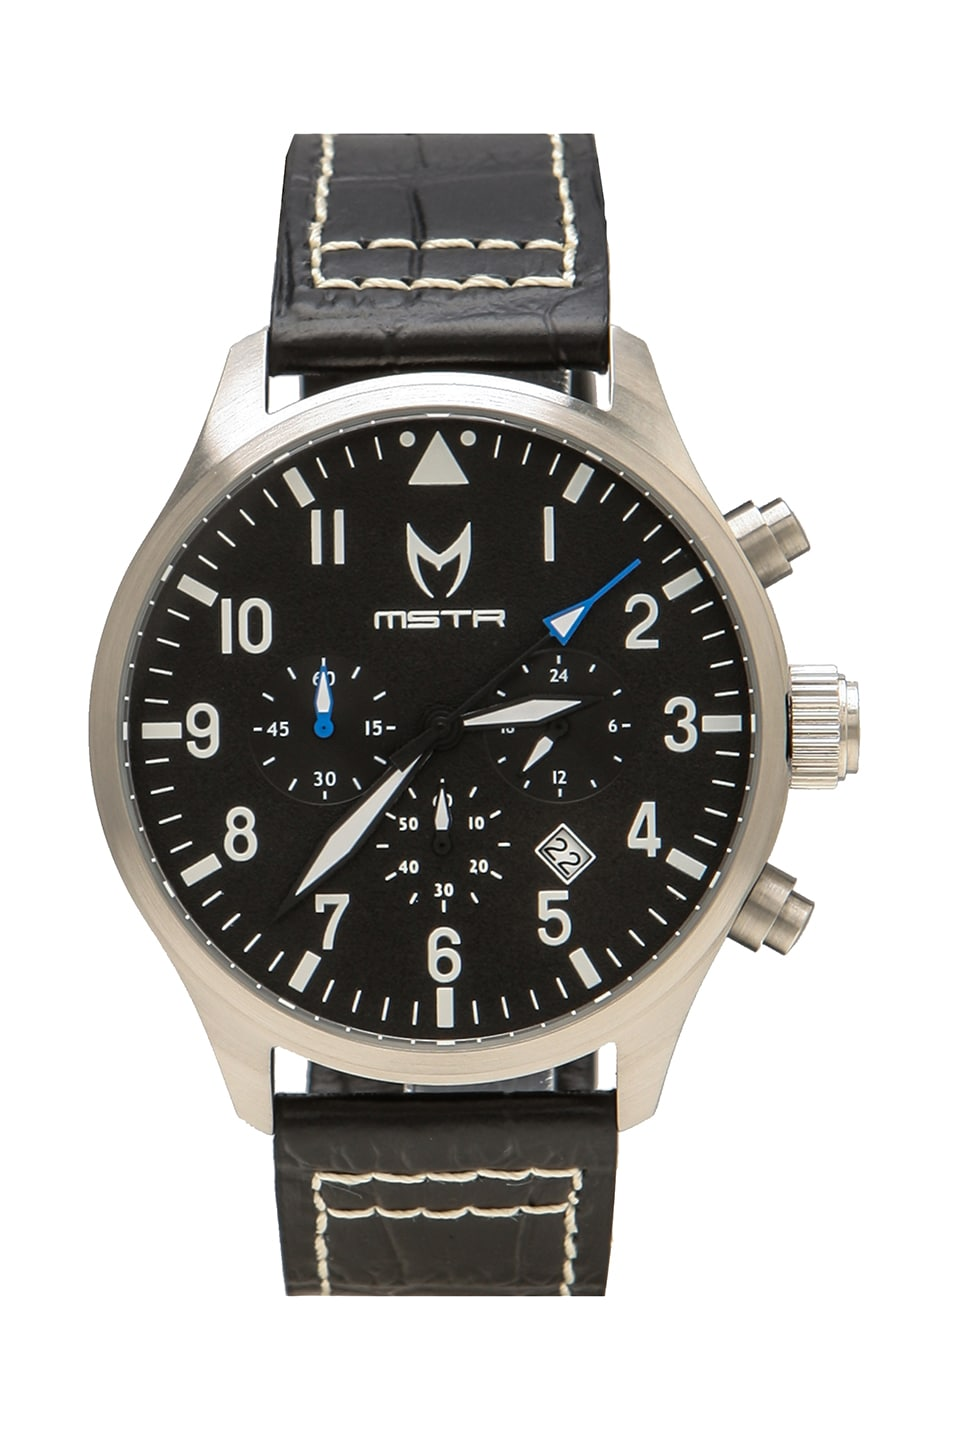 Meister Aviator Croc Leather Band in Silver/Black/Croc